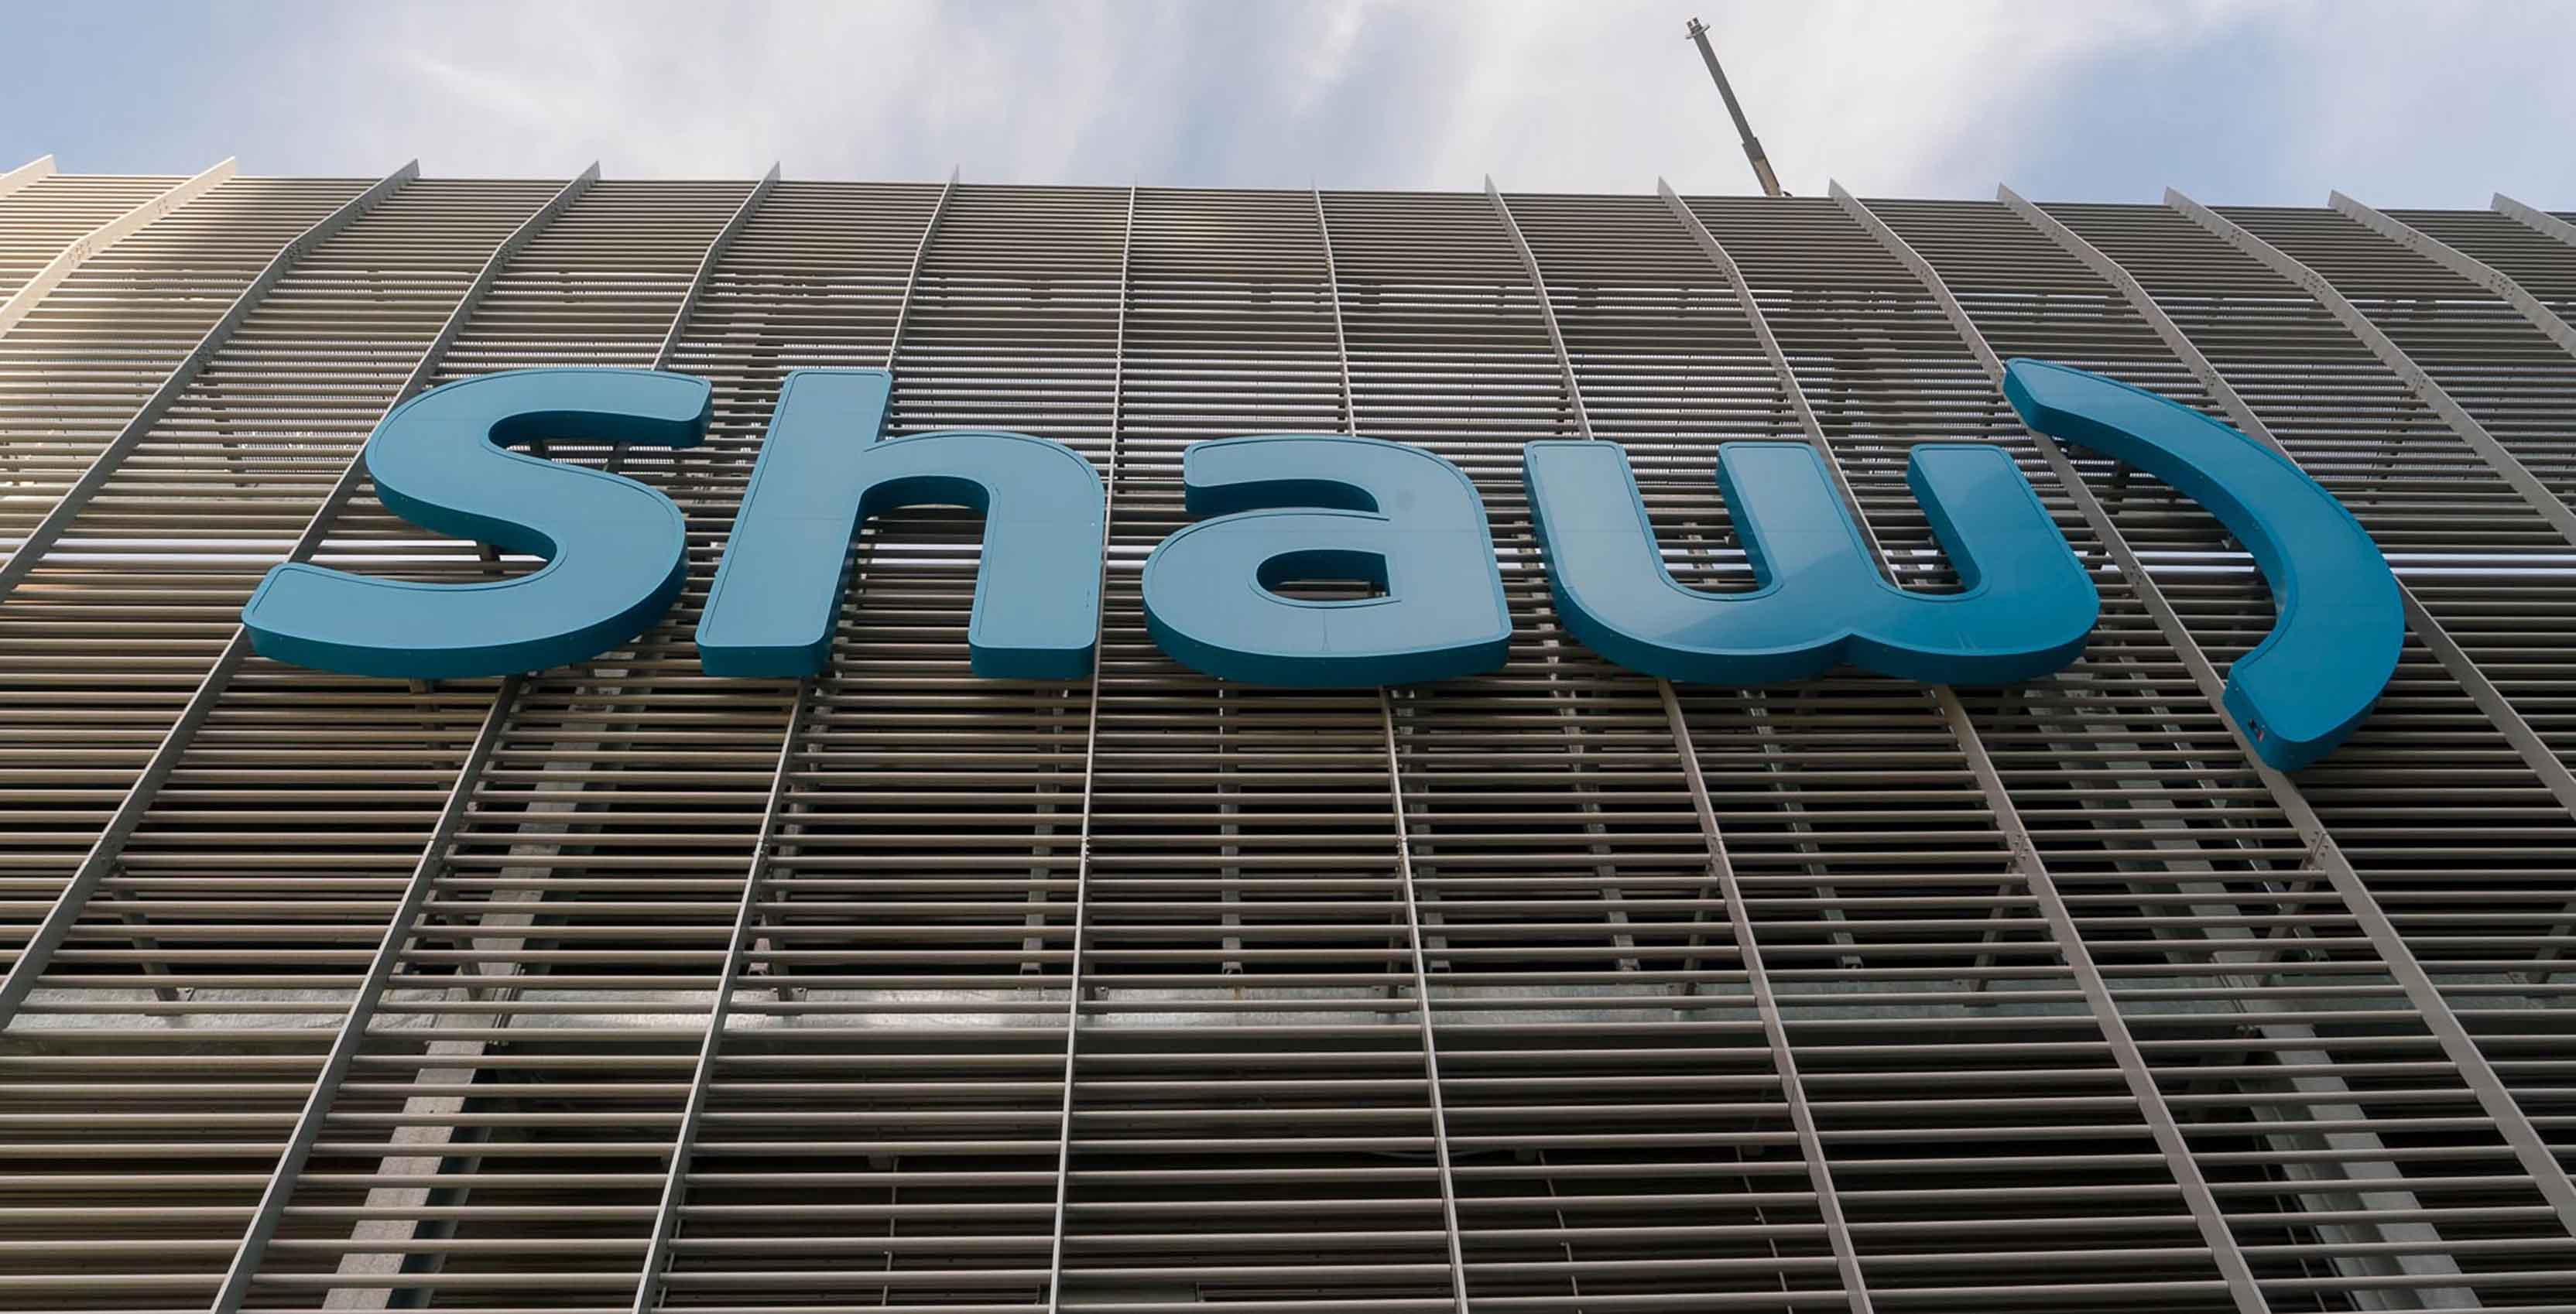 Shaw loses a quarter of its workforce in voluntary departure